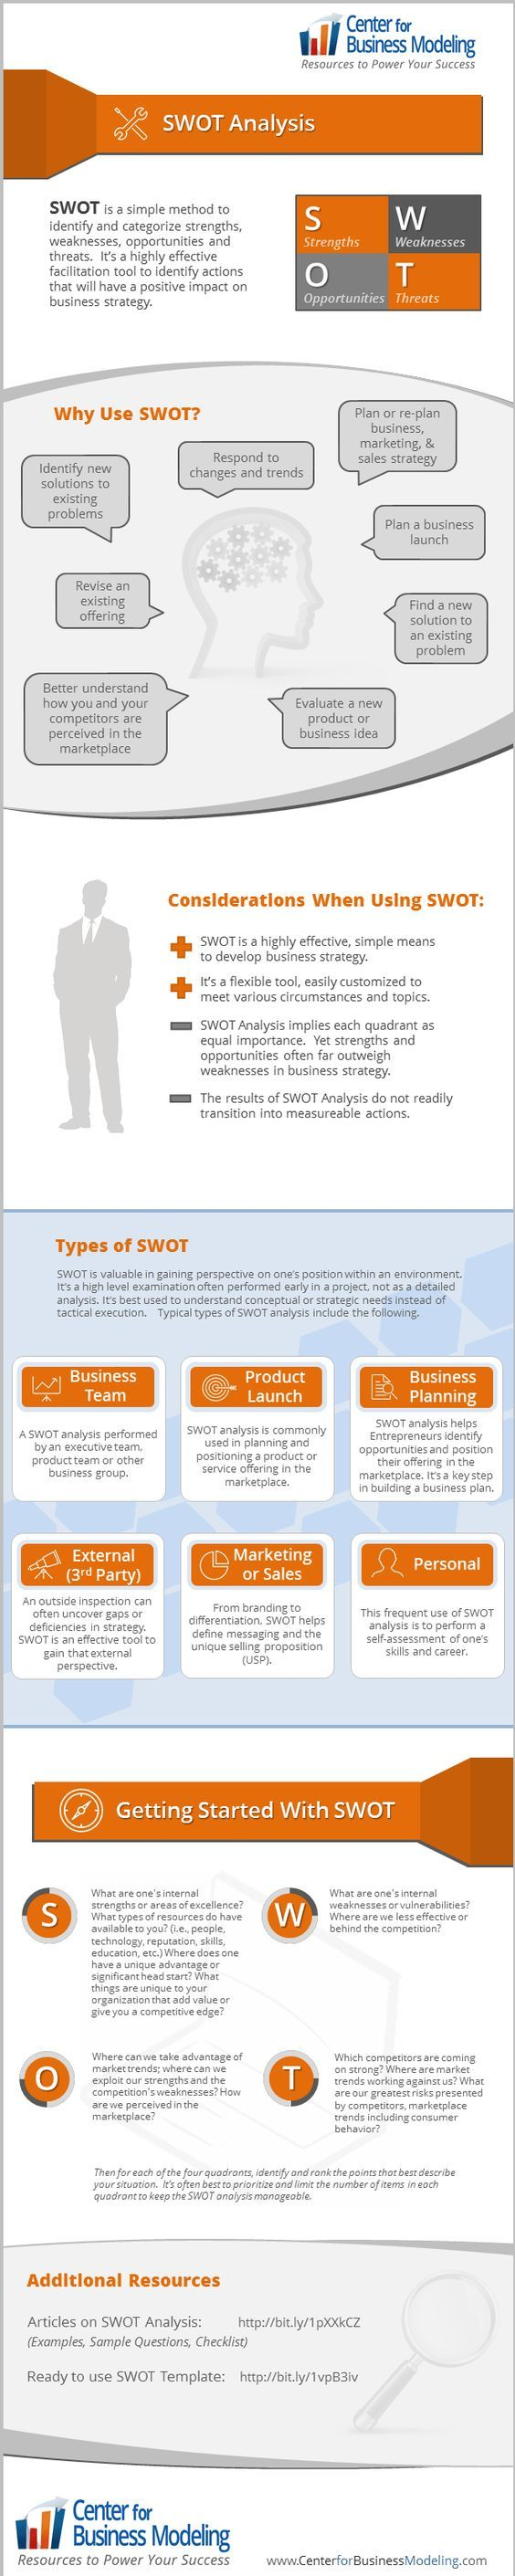 How To Do A Swot Analysis Infographic  Business Coaching